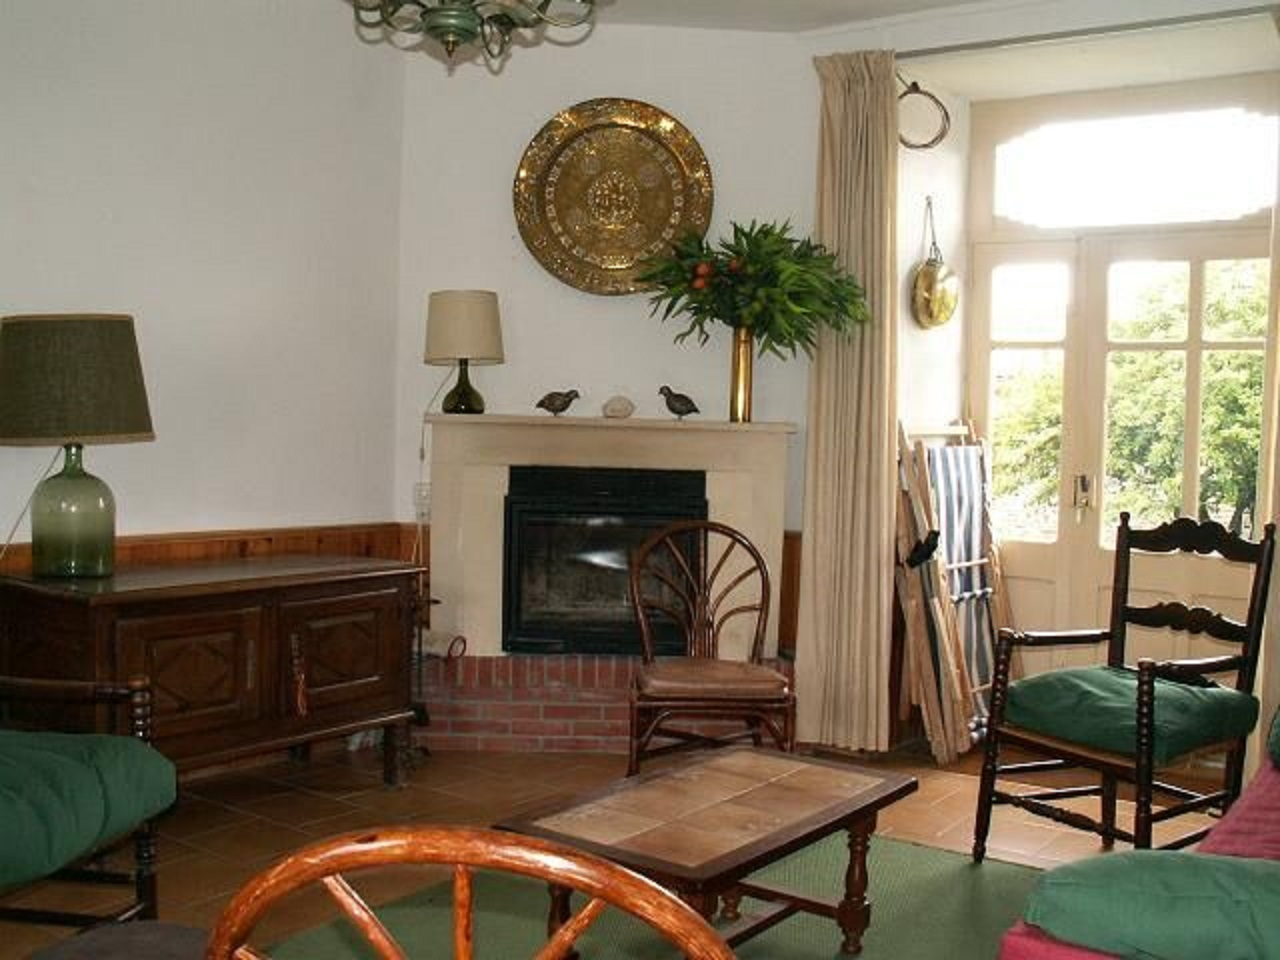 The living room, view of the fireplace